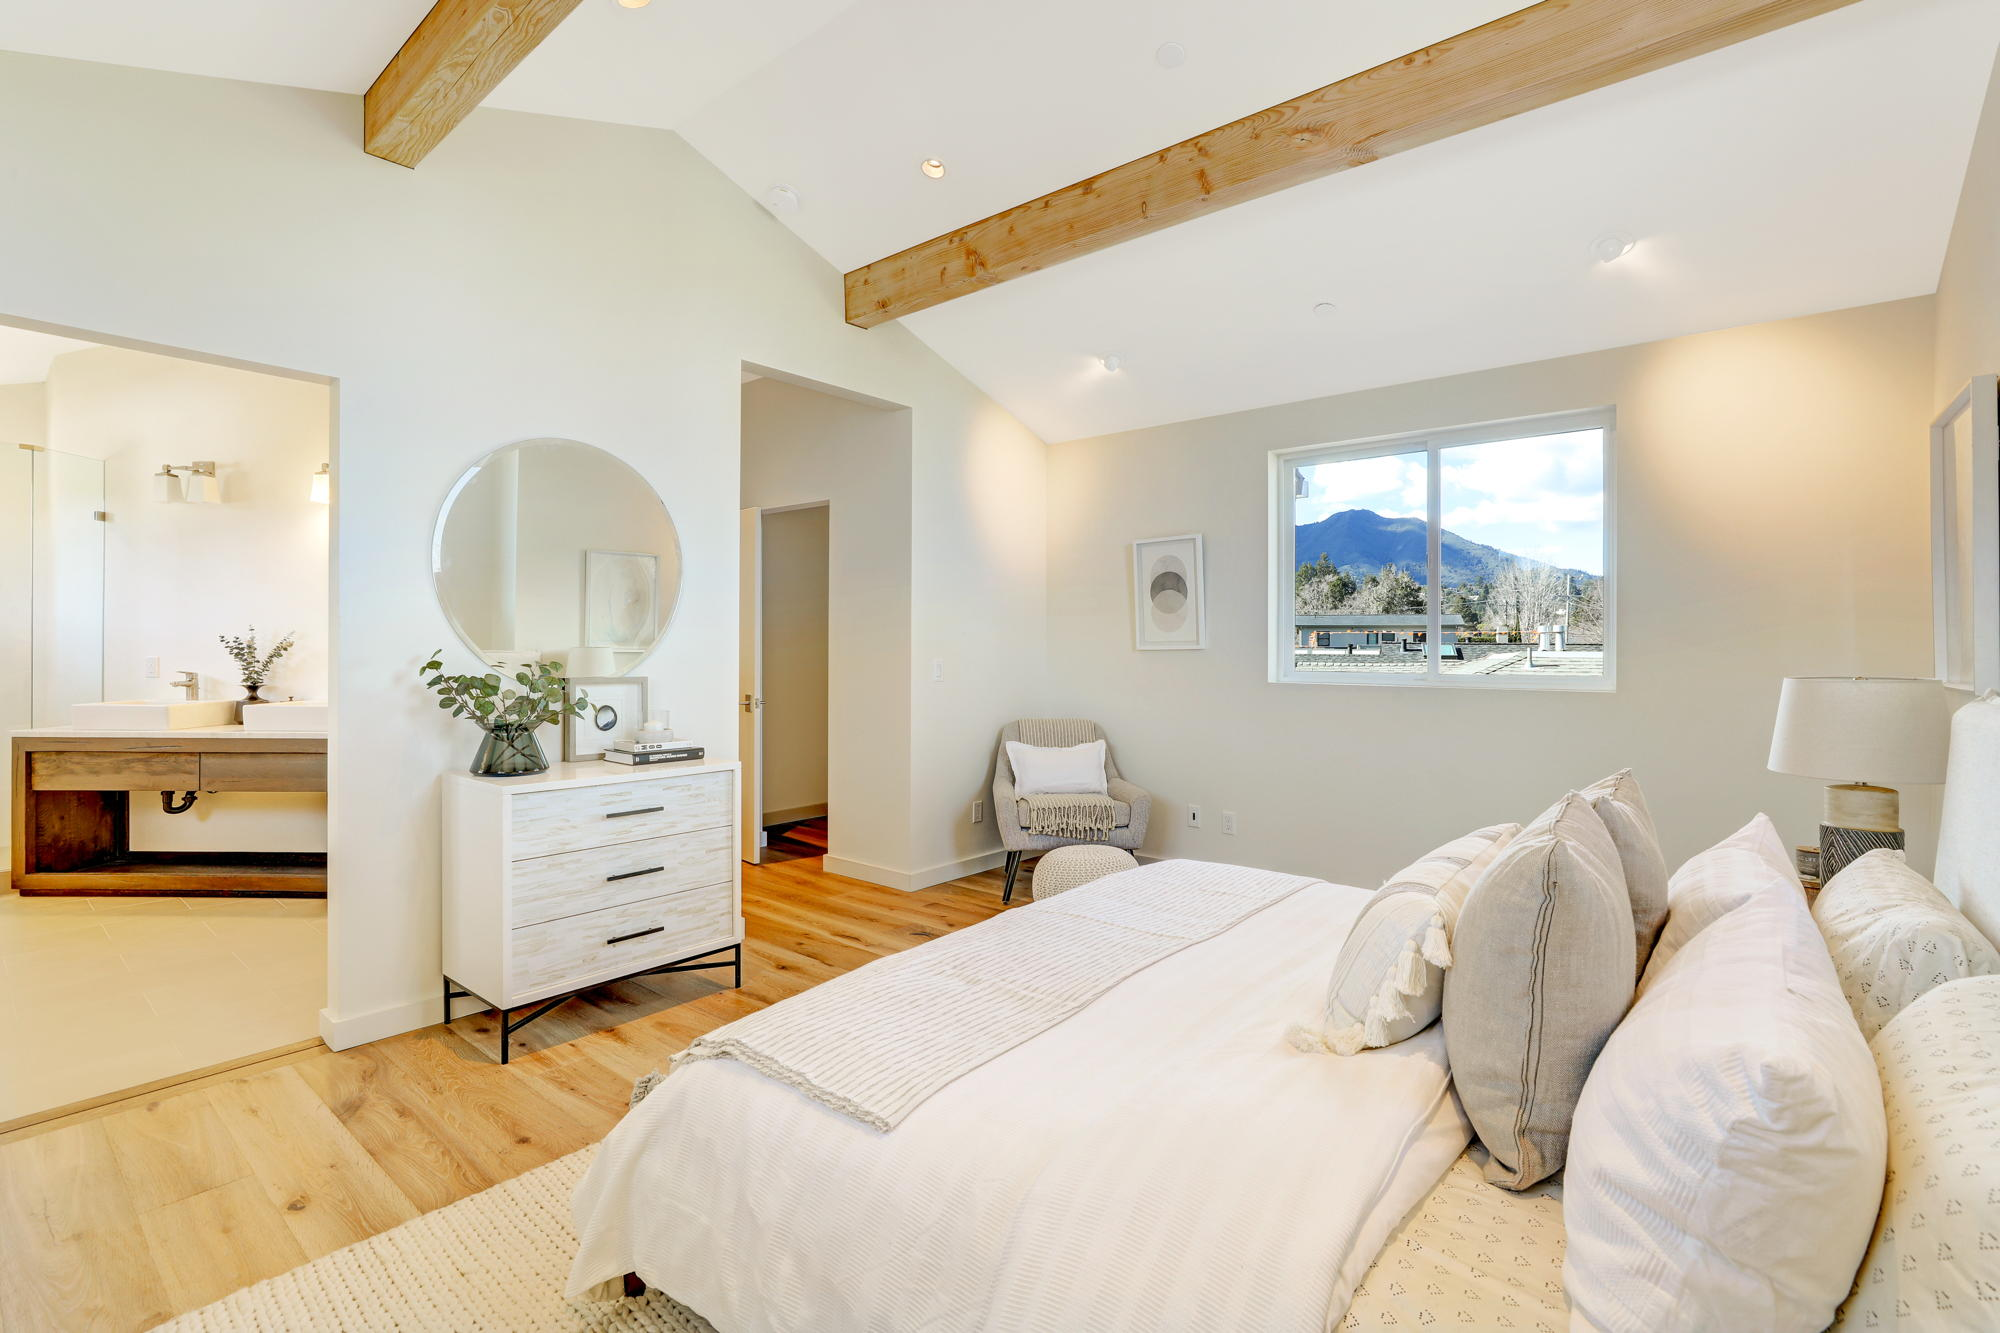 38 Ryan Avenue, Mill Valley - Sycamore Park Homes for sale - 45- Listed by Team Own Marin with Compass Real Estate.jpg